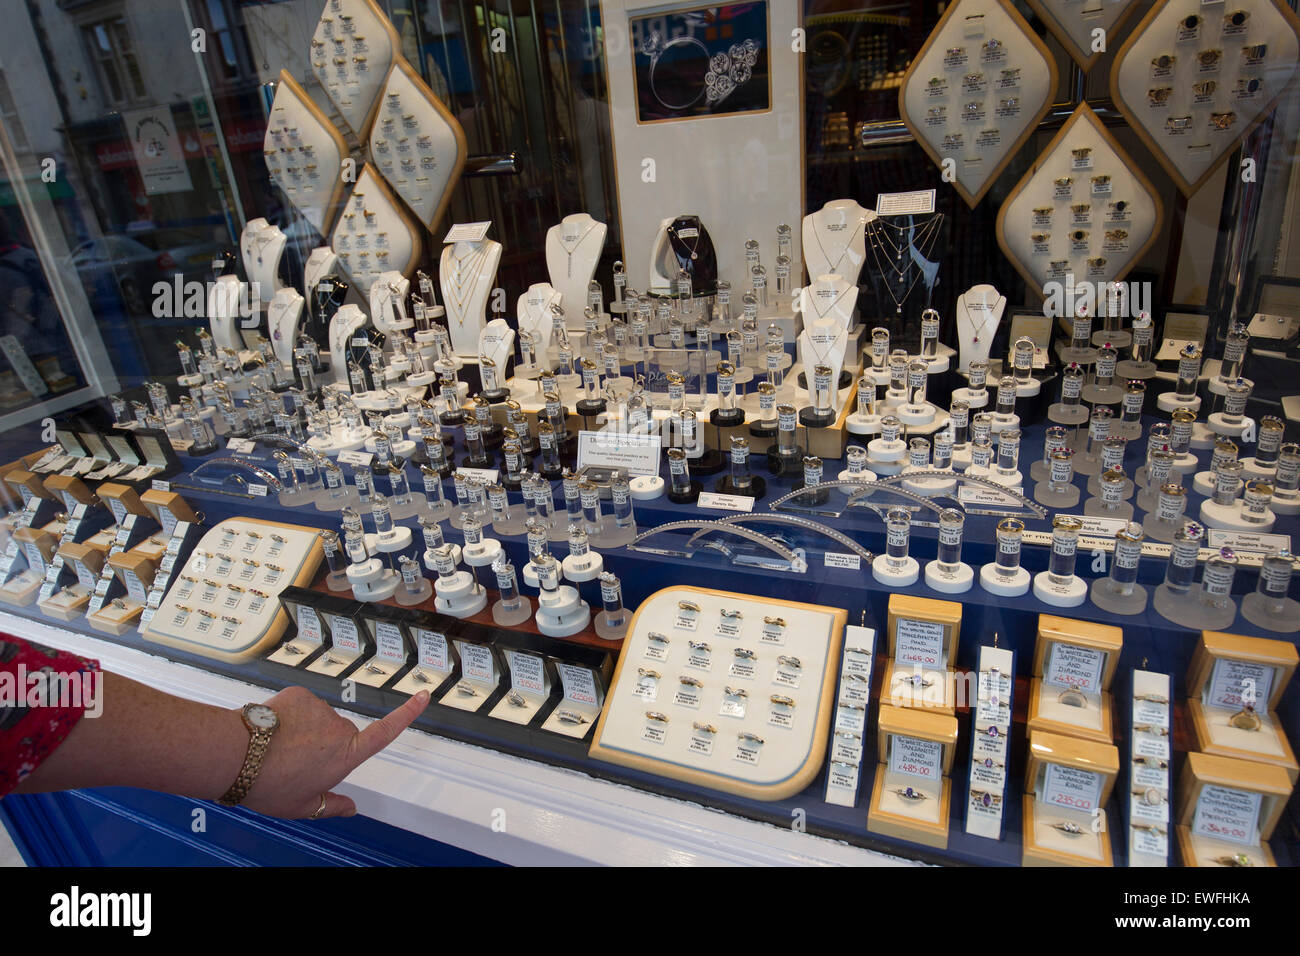 ctycee antwerpen antwerp in pelikaanstraat shop photo stock belgium diamond